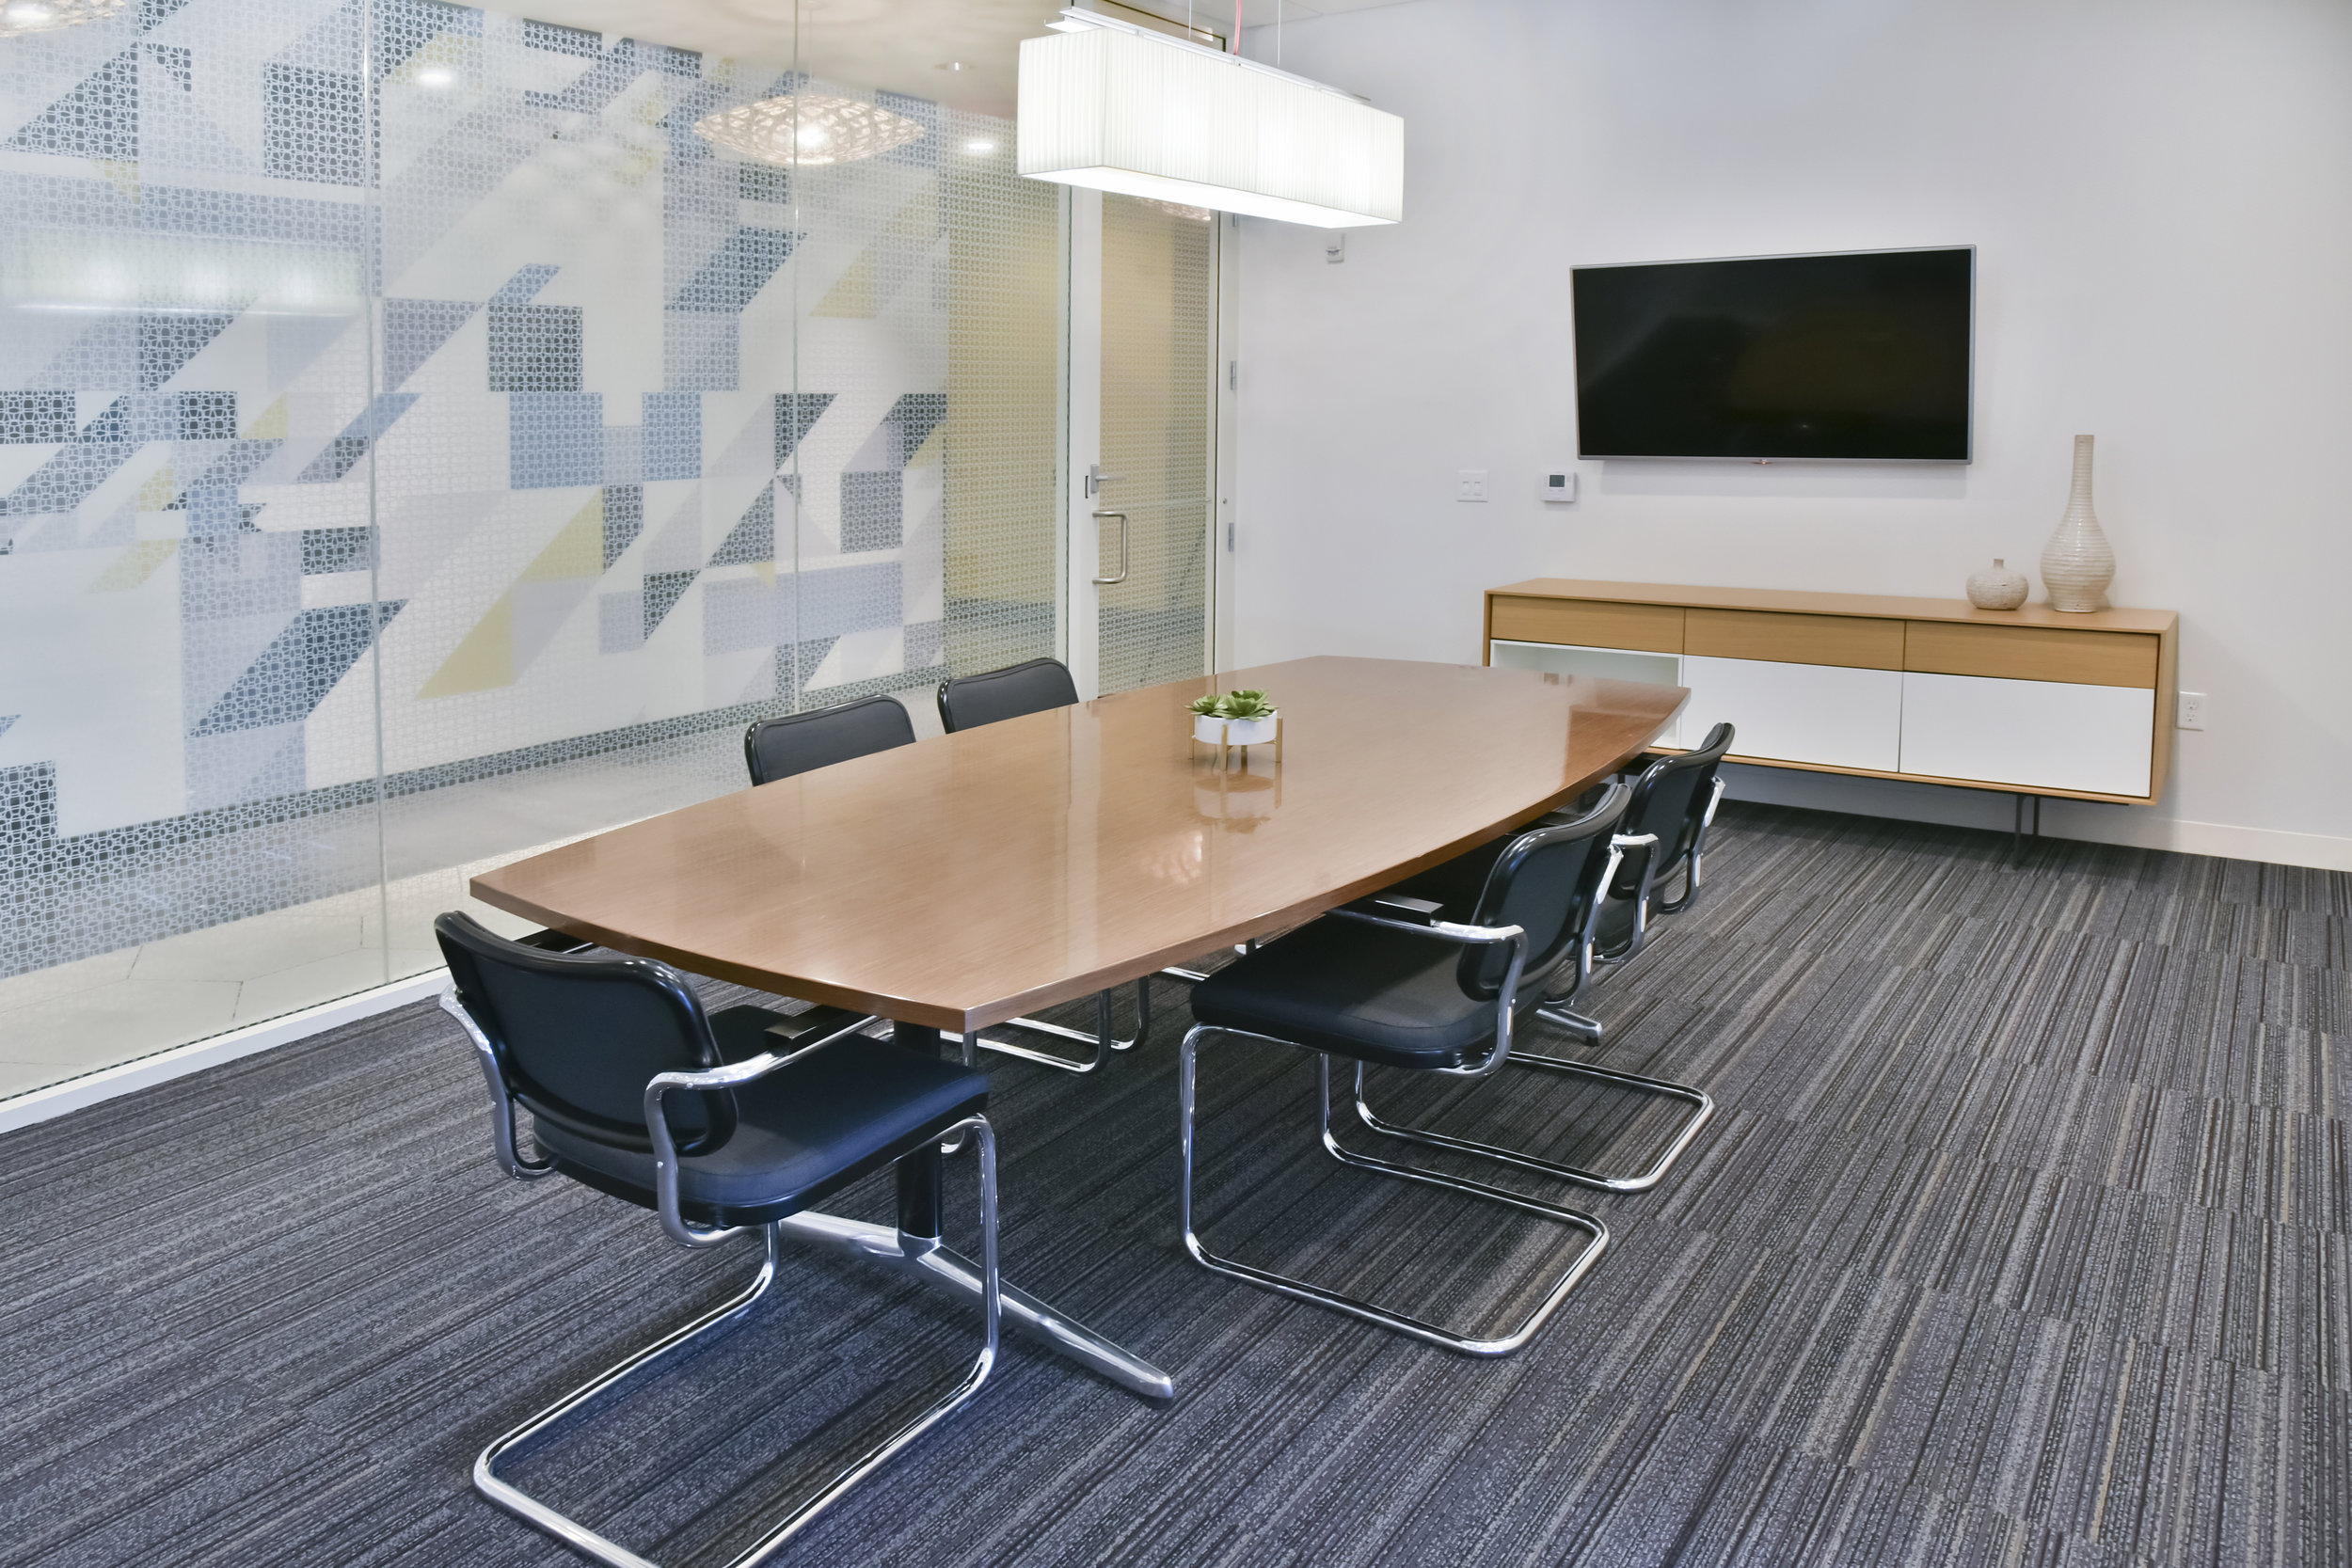 09-Private business room for you next big meeting.jpg